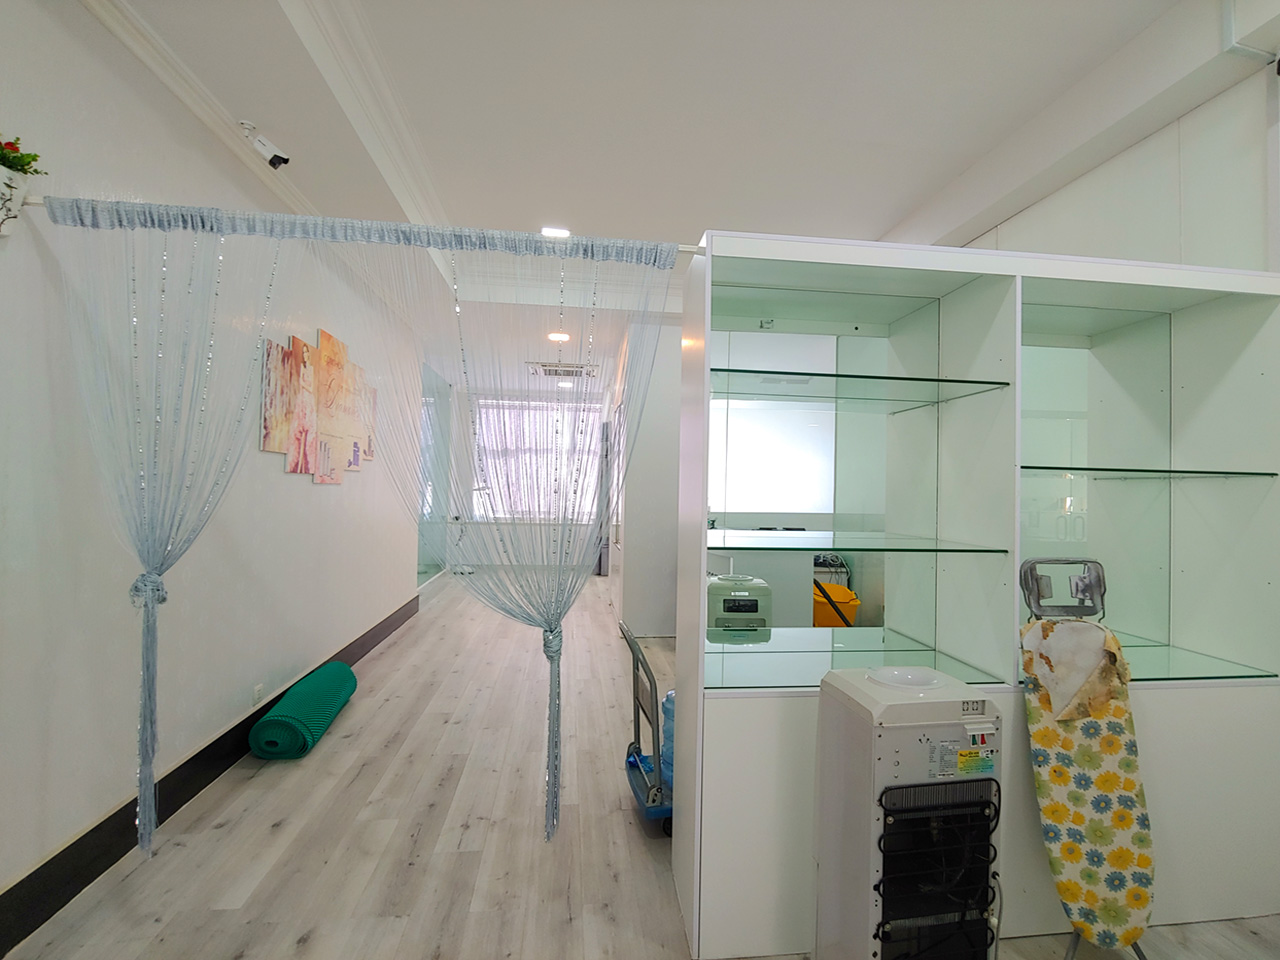 A stunning 68 Sq.m office space for rent in BKK 1